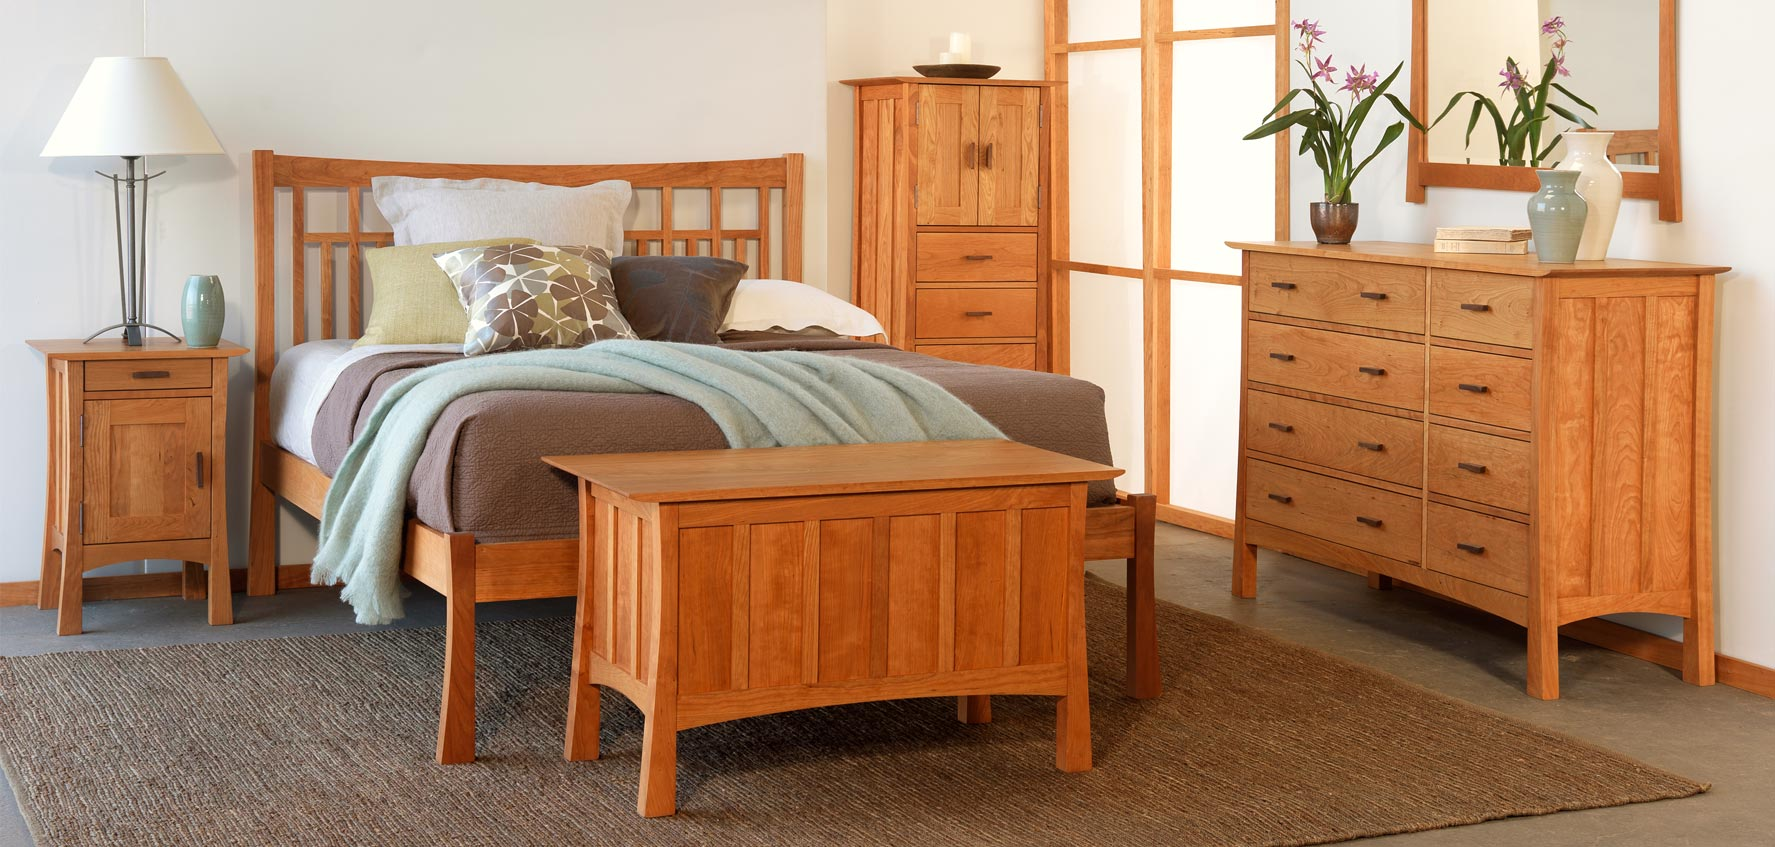 3 Bedroom Furniture Sets You Can Customize for Free - Vermont ...